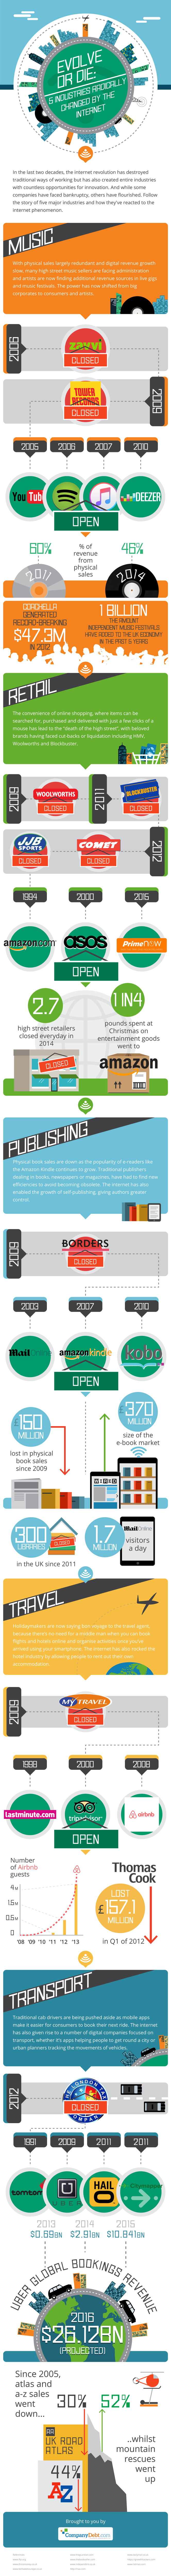 How 5 Industries were Changed By The Internet